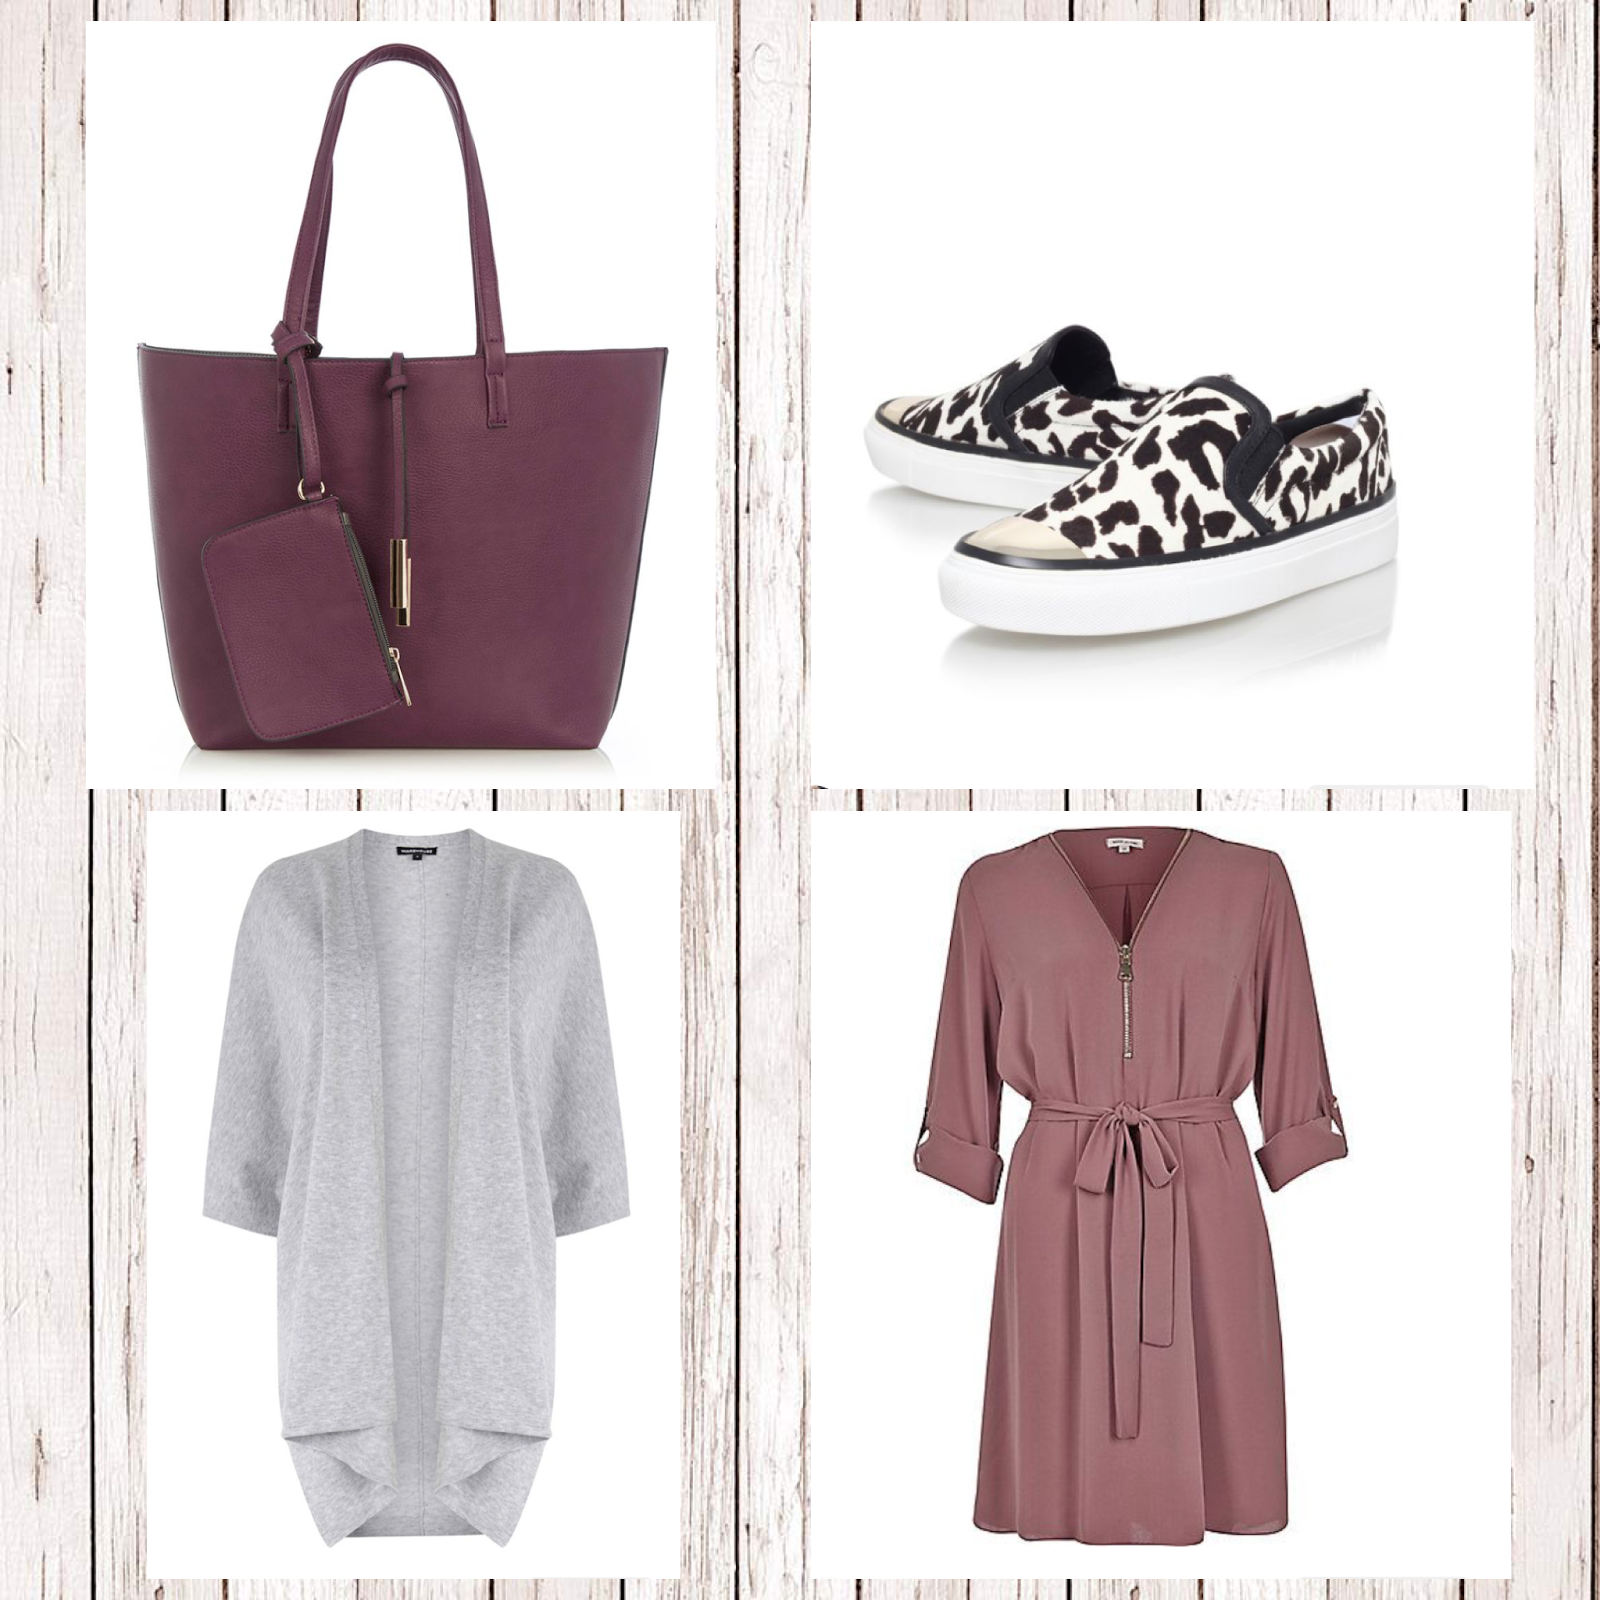 Wardrobe Wants - Style Wish List